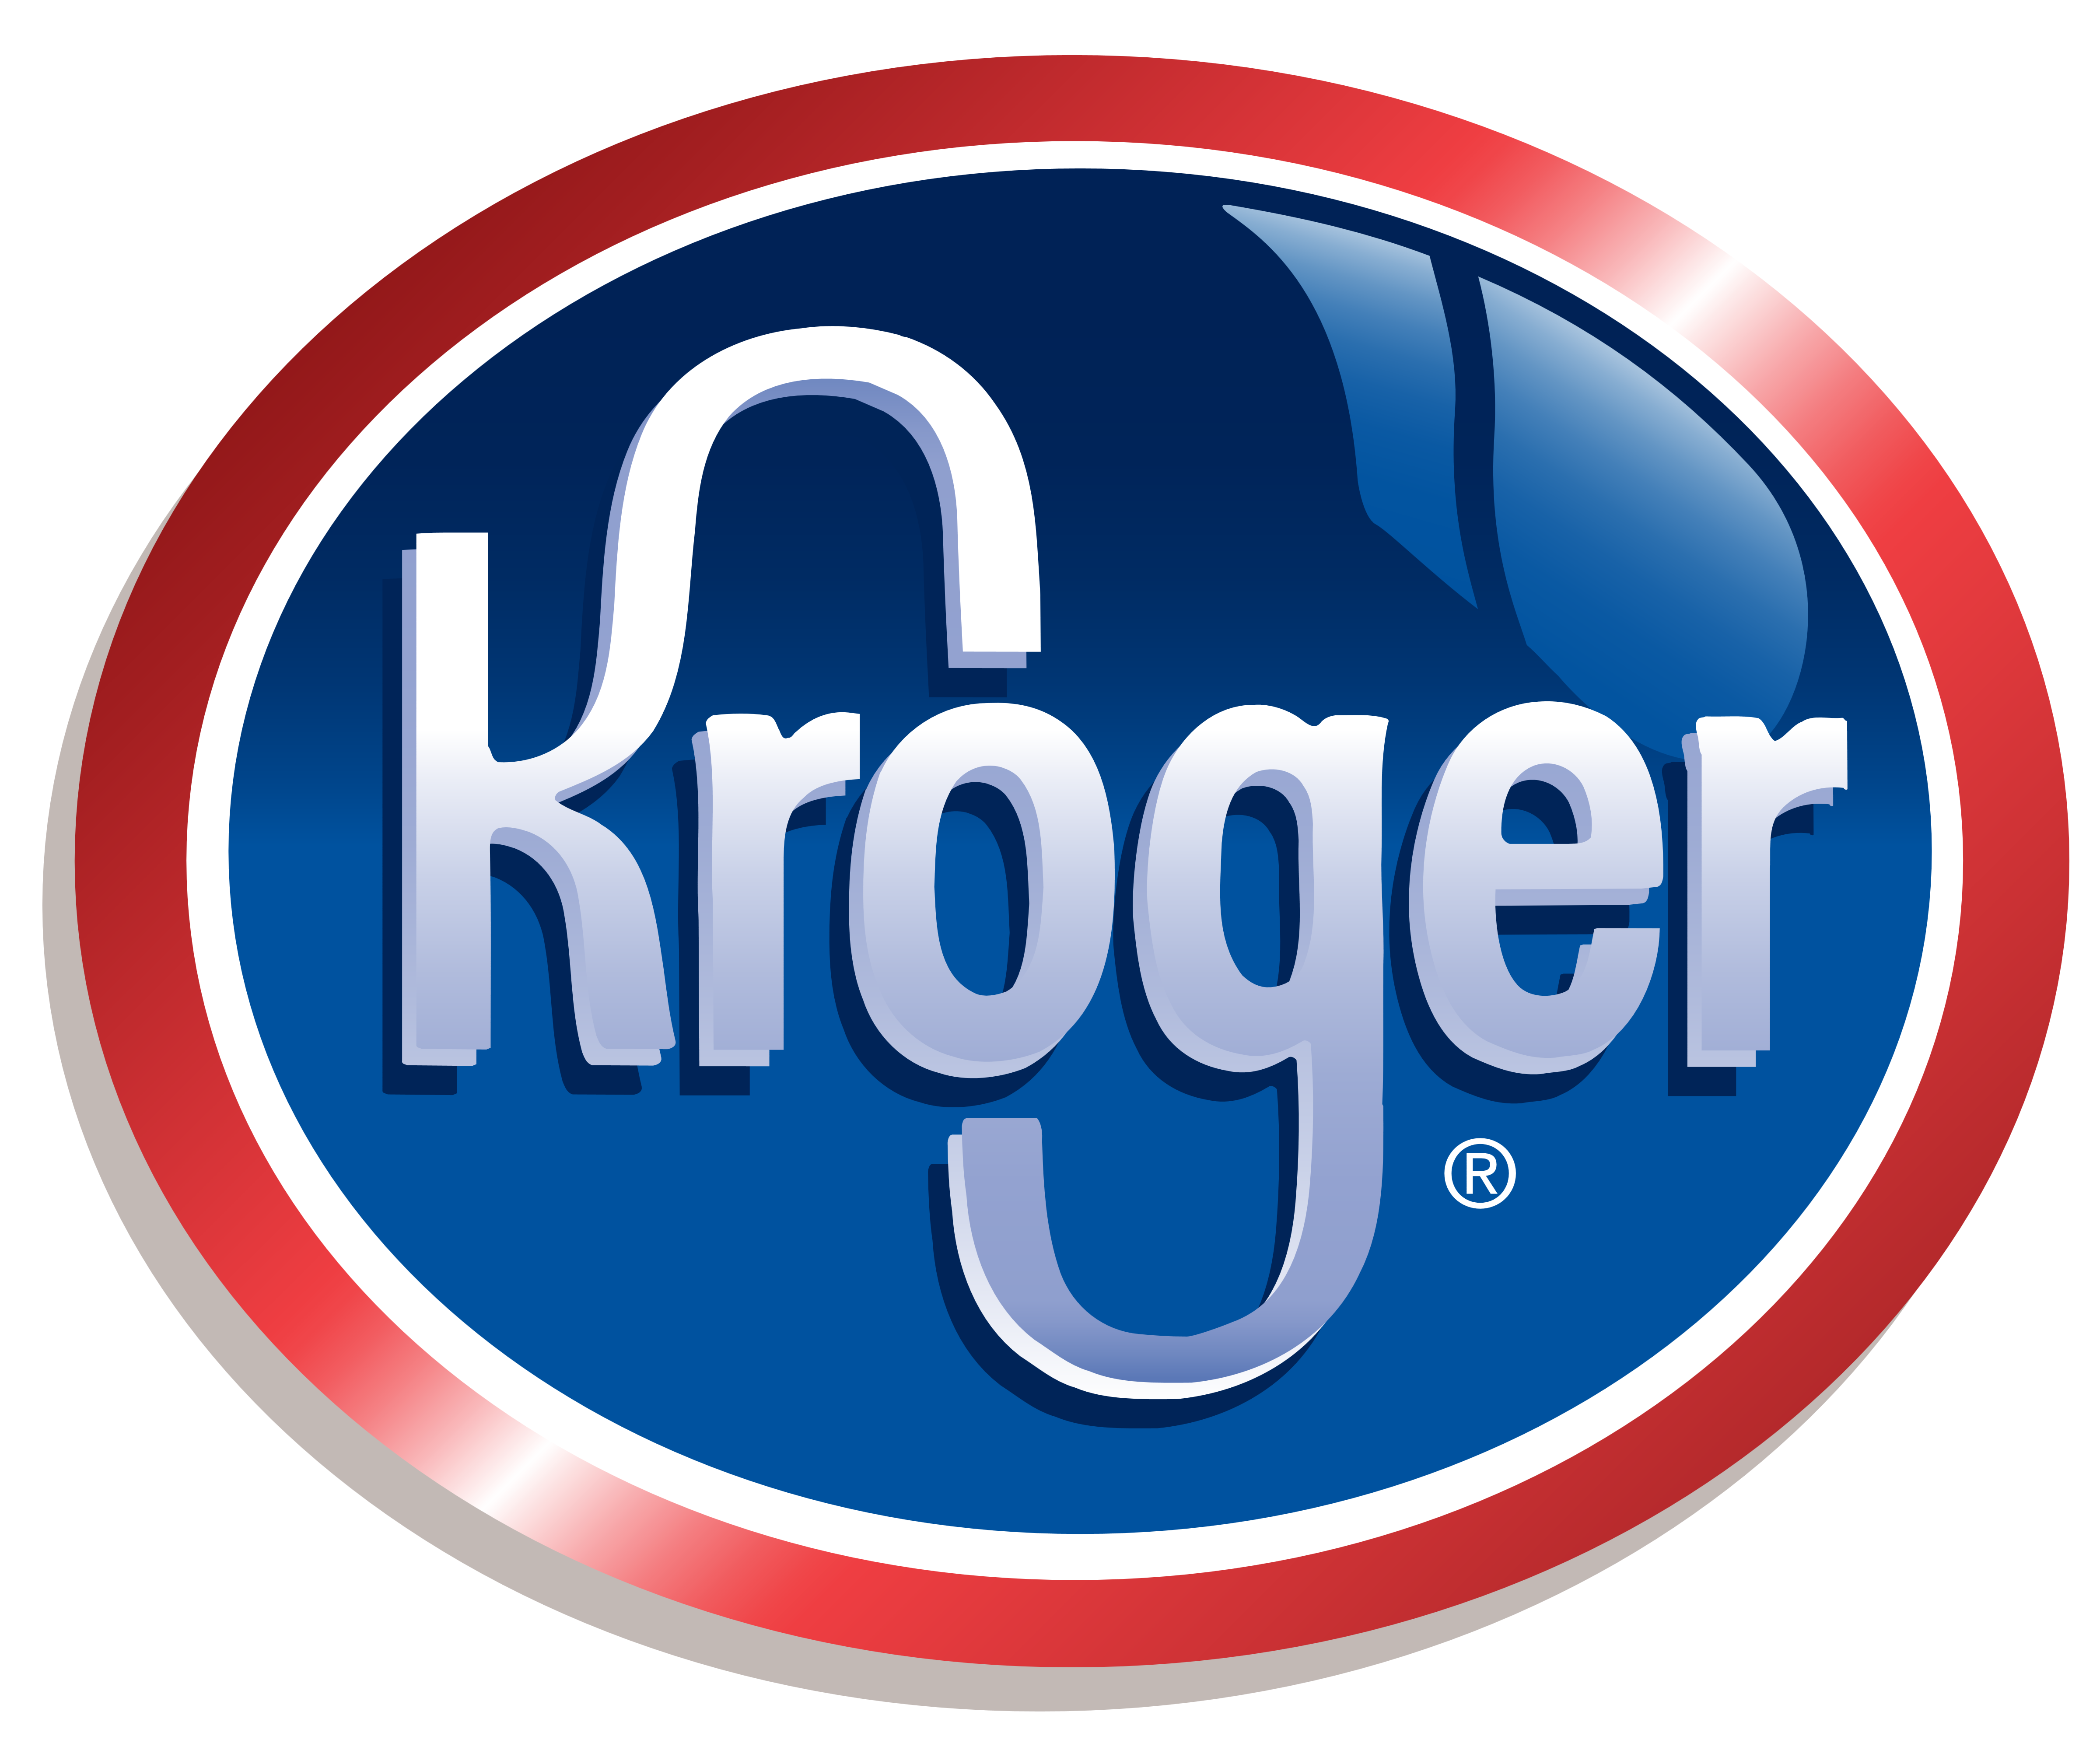 2011 06 01 archive likewise Introducing The Oscar Mayer Bacon Hot Dog moreover Tt1740828 likewise  further 192 Kroger Logo Download. on oscar meyer cartoon